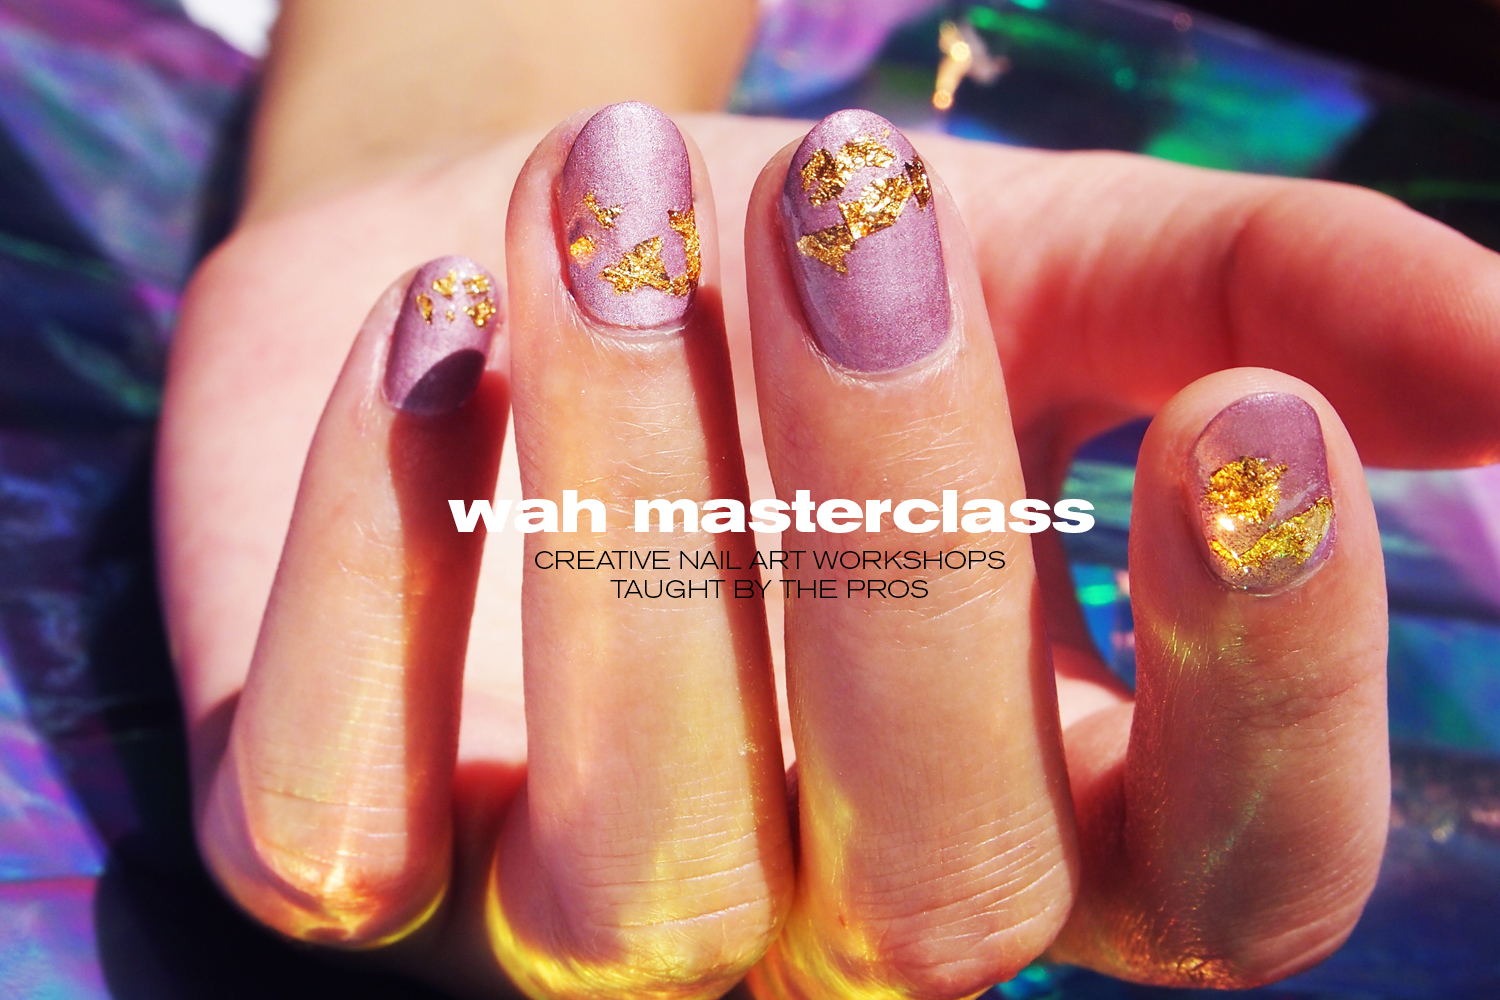 Masterclasses Wah London